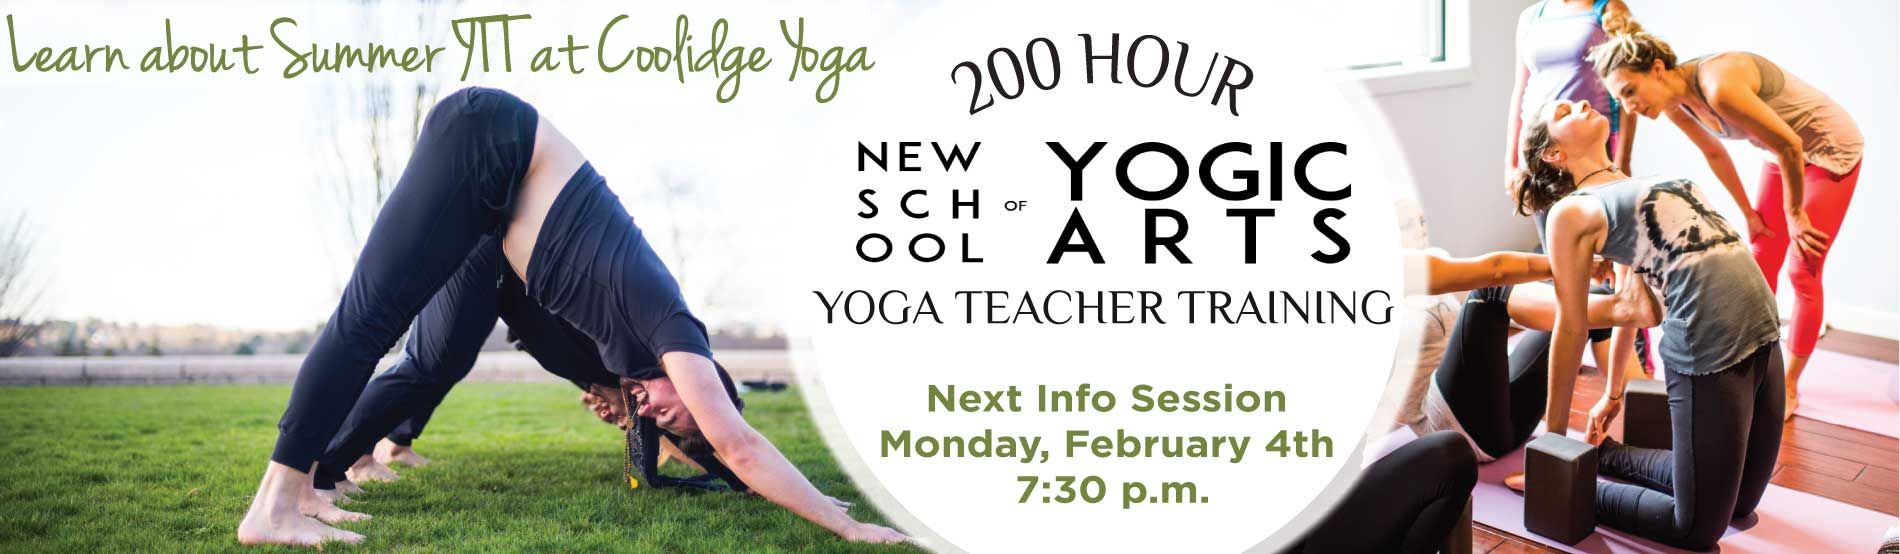 Summer Yoga Teacher Training info Session at Coolidge Yoga